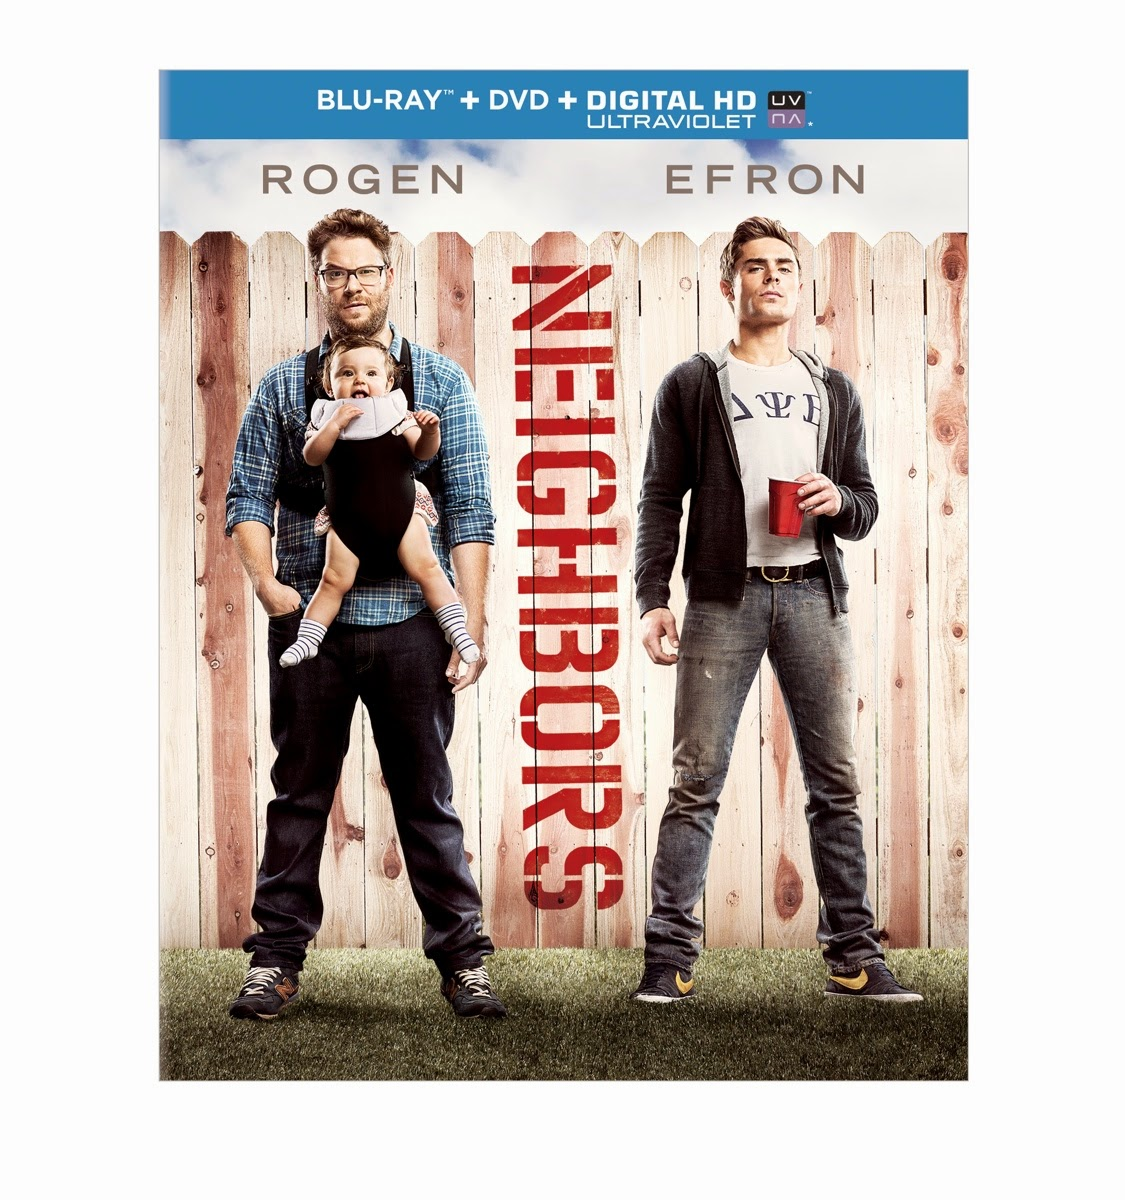 http://www.amazon.com/Neighbors-Blu-ray-DVD-DIGITAL-UltraViolet/dp/B00K89VBV0/